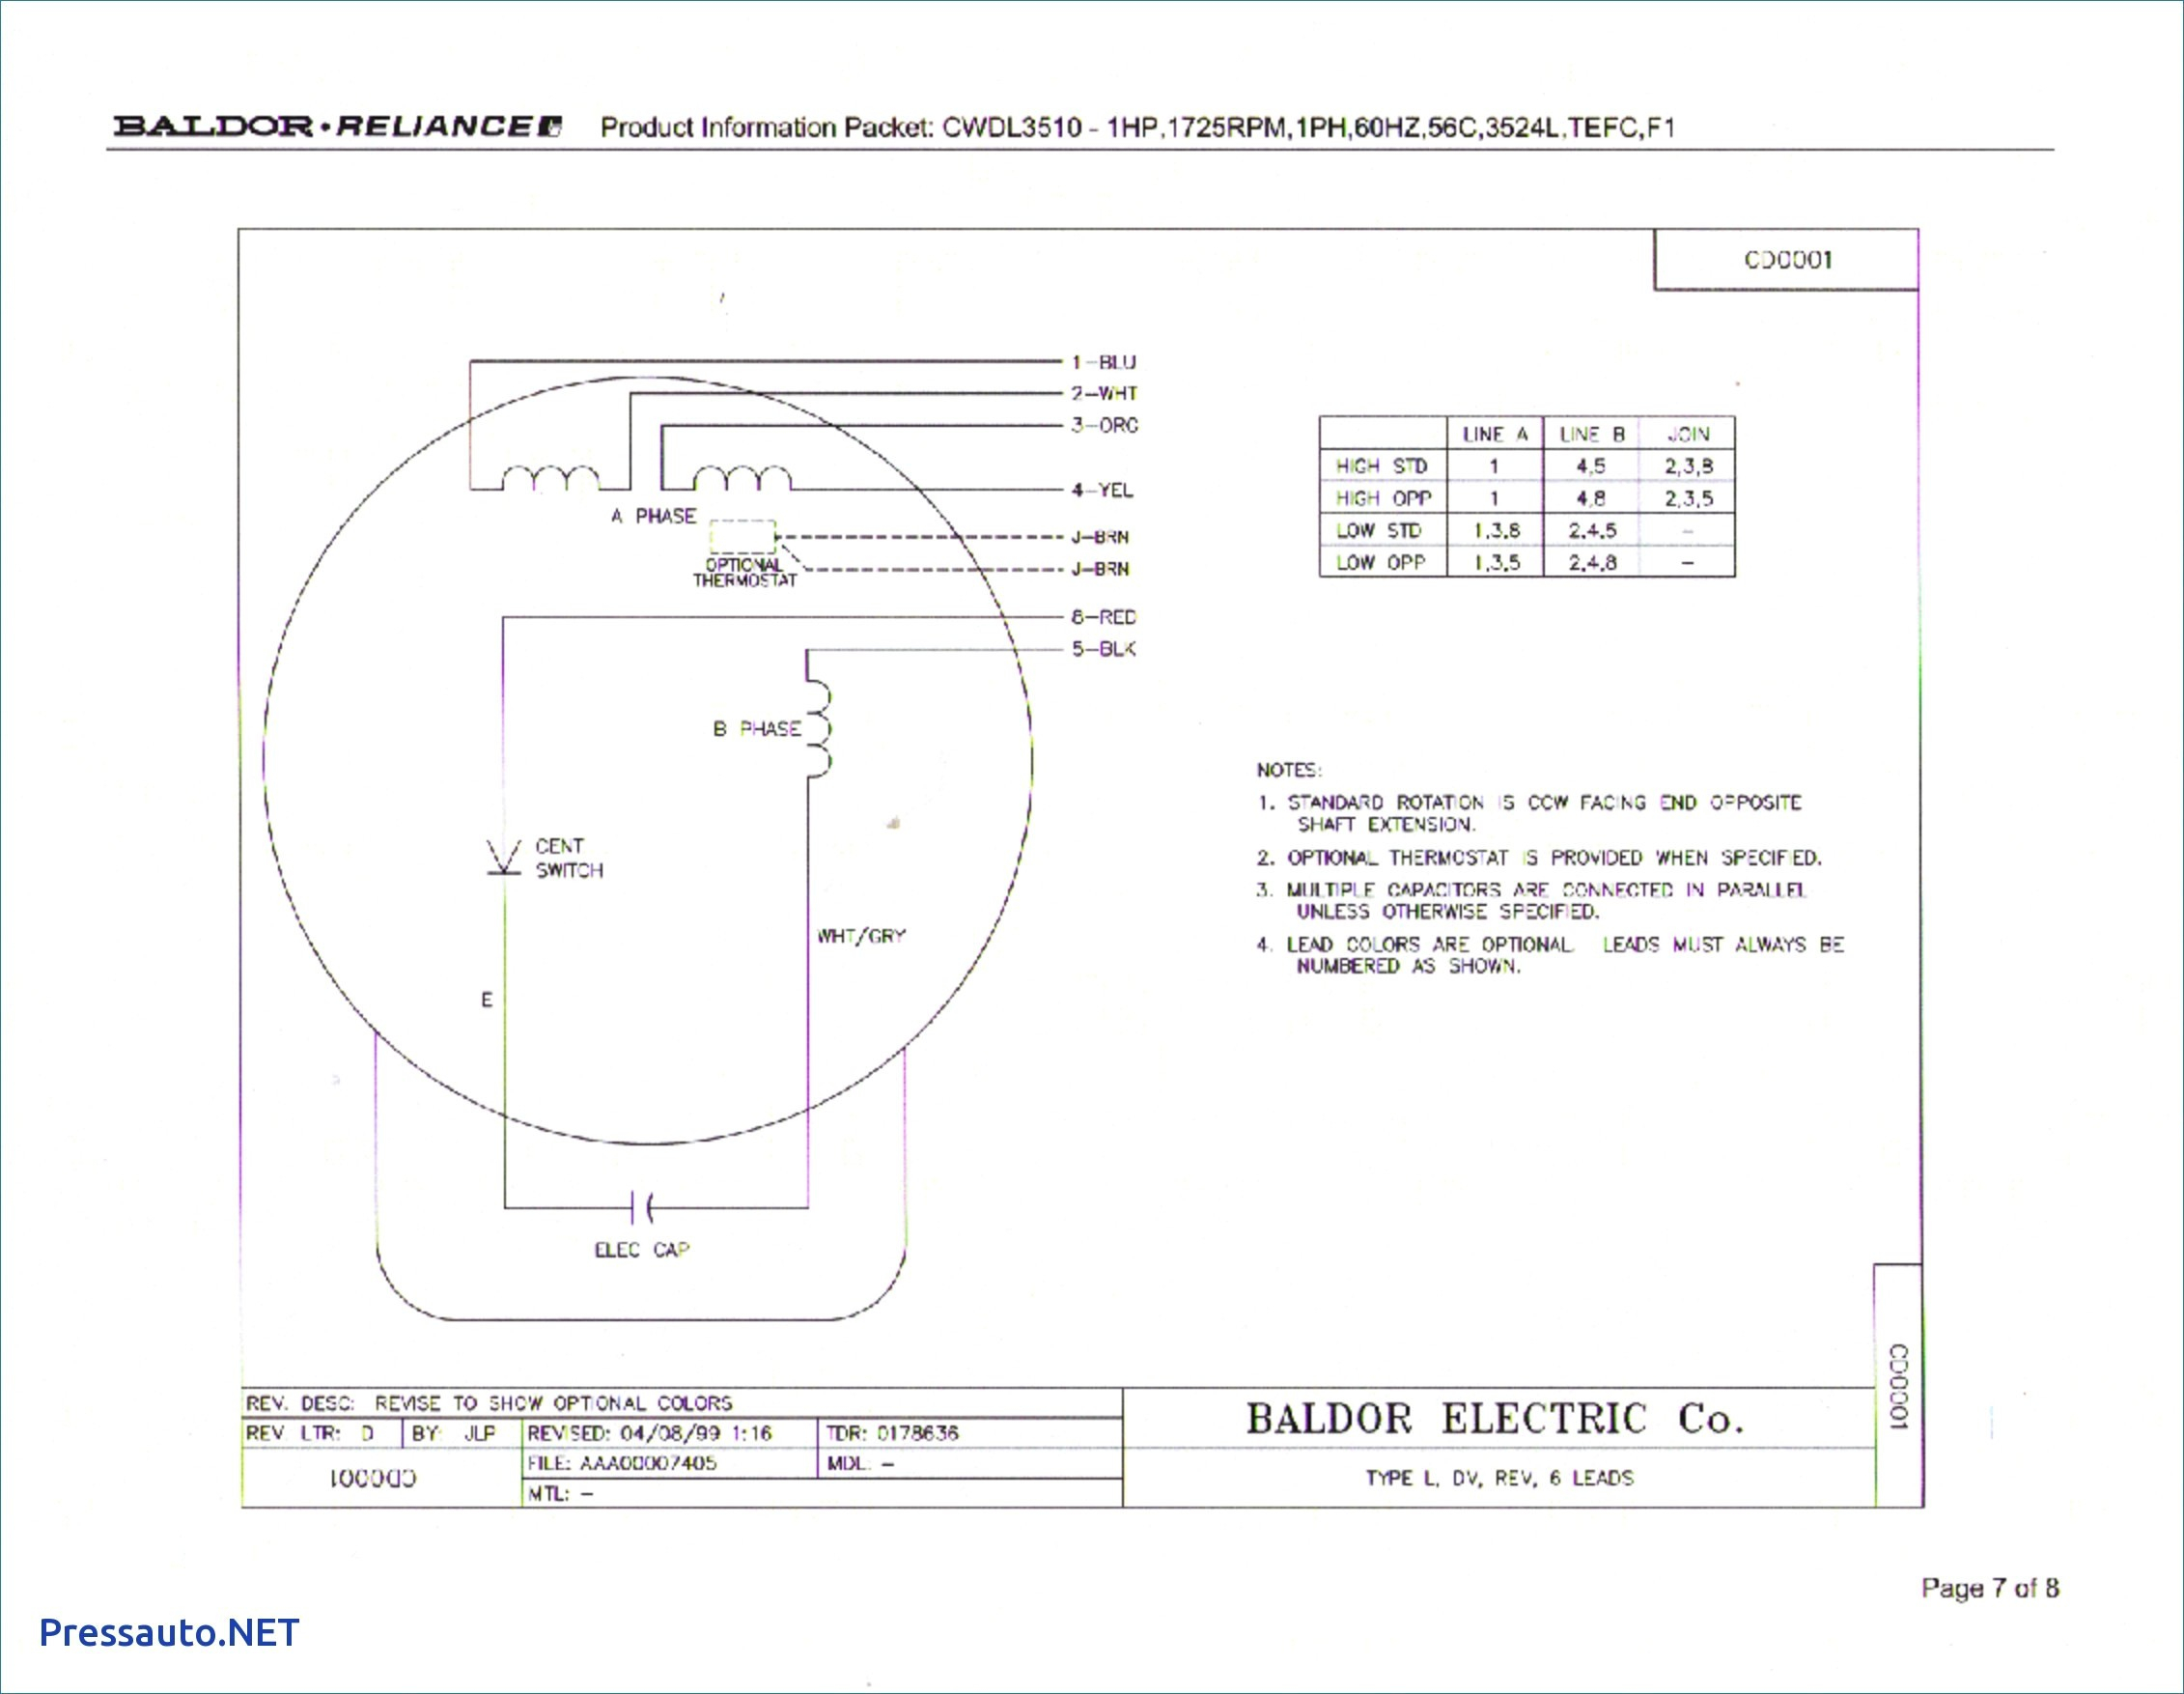 baldor l1410t wiring diagram Download-Wiring Diagram For Electric Motor With Capacitor Best Awesome Baldor 19-r